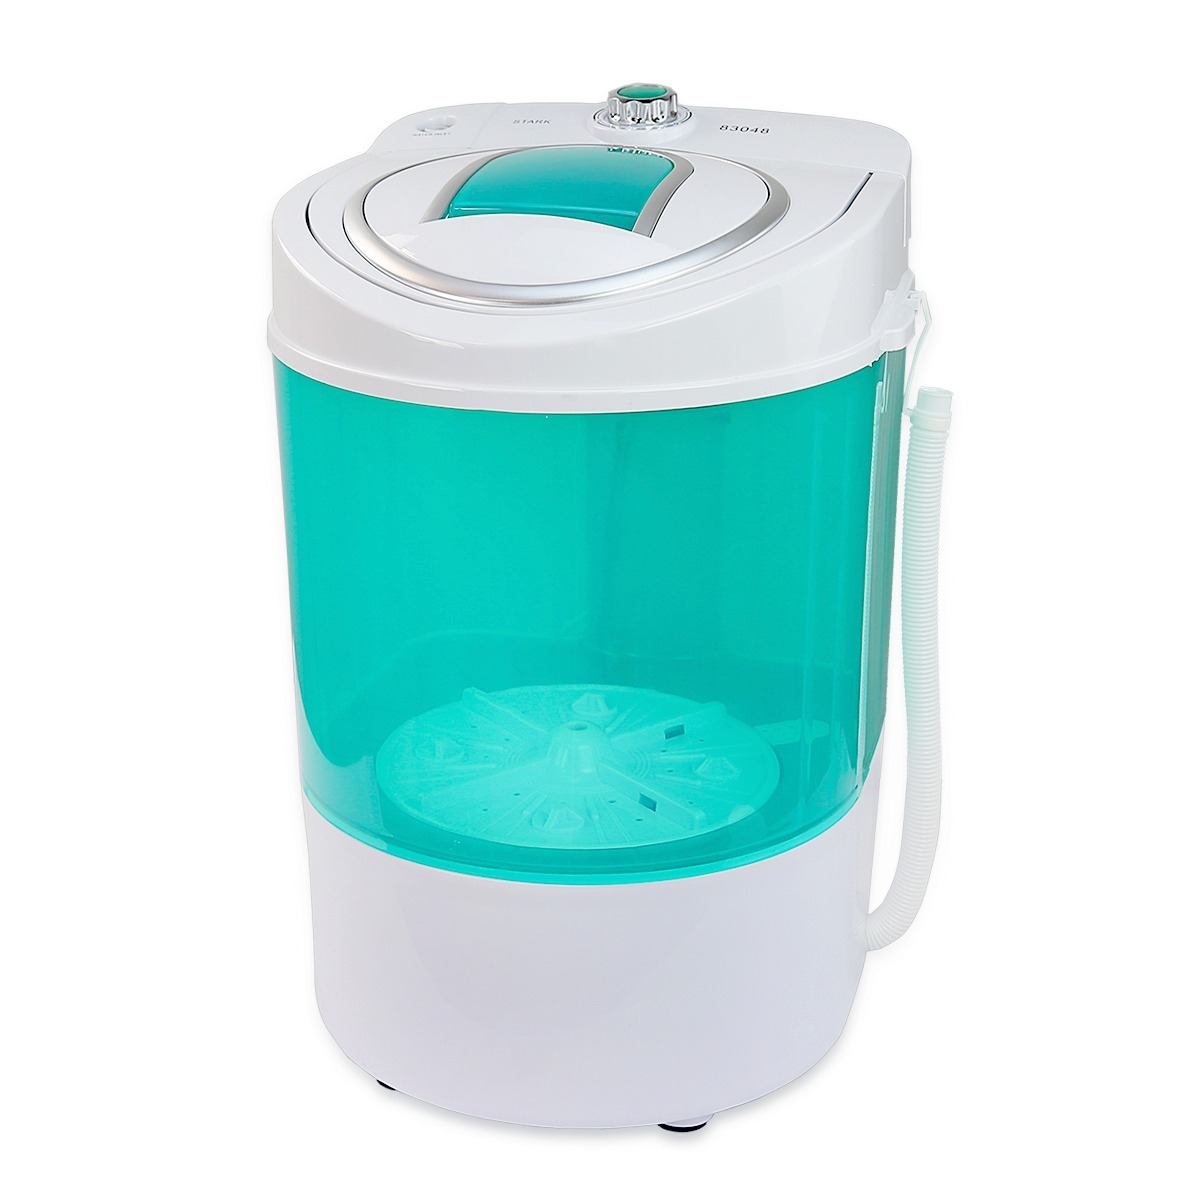 Emejing Small Washing Machine For Apartment Photos - Decorating ...